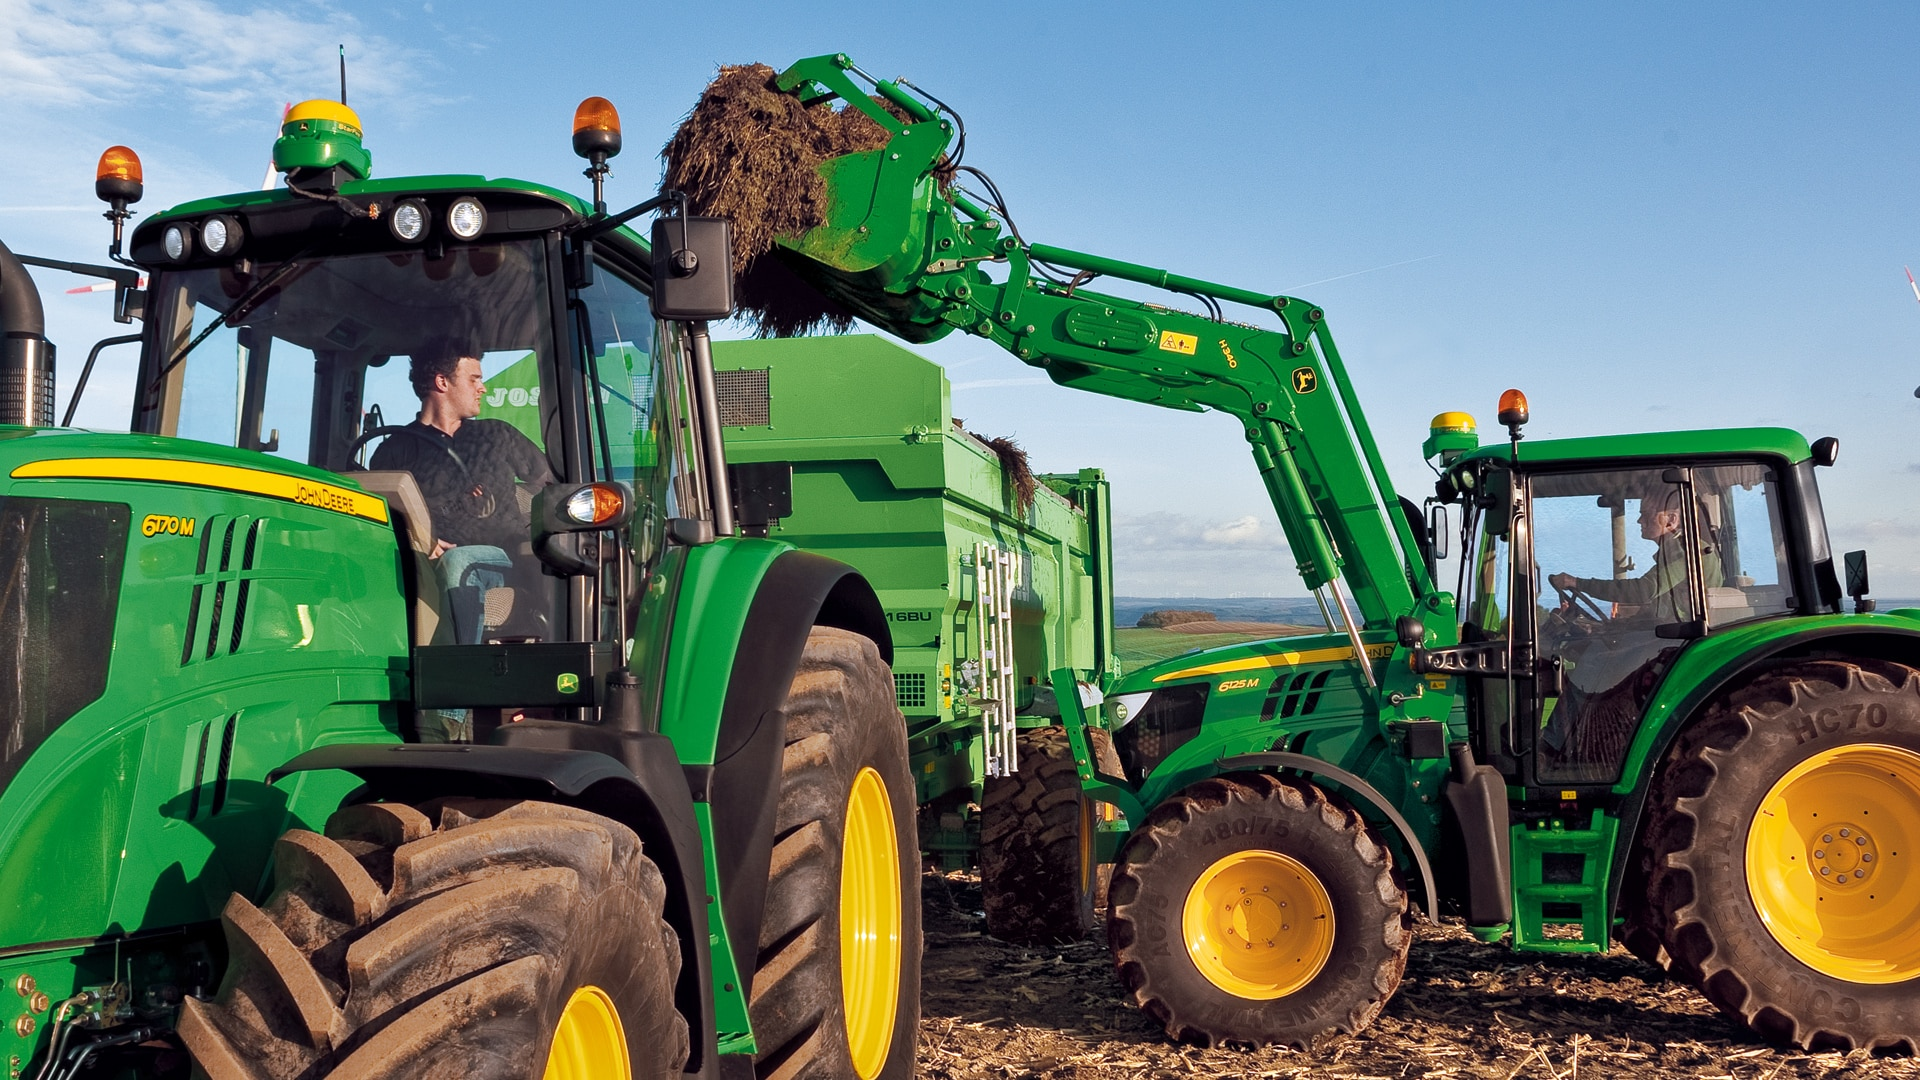 image of tractor working with attachments in field